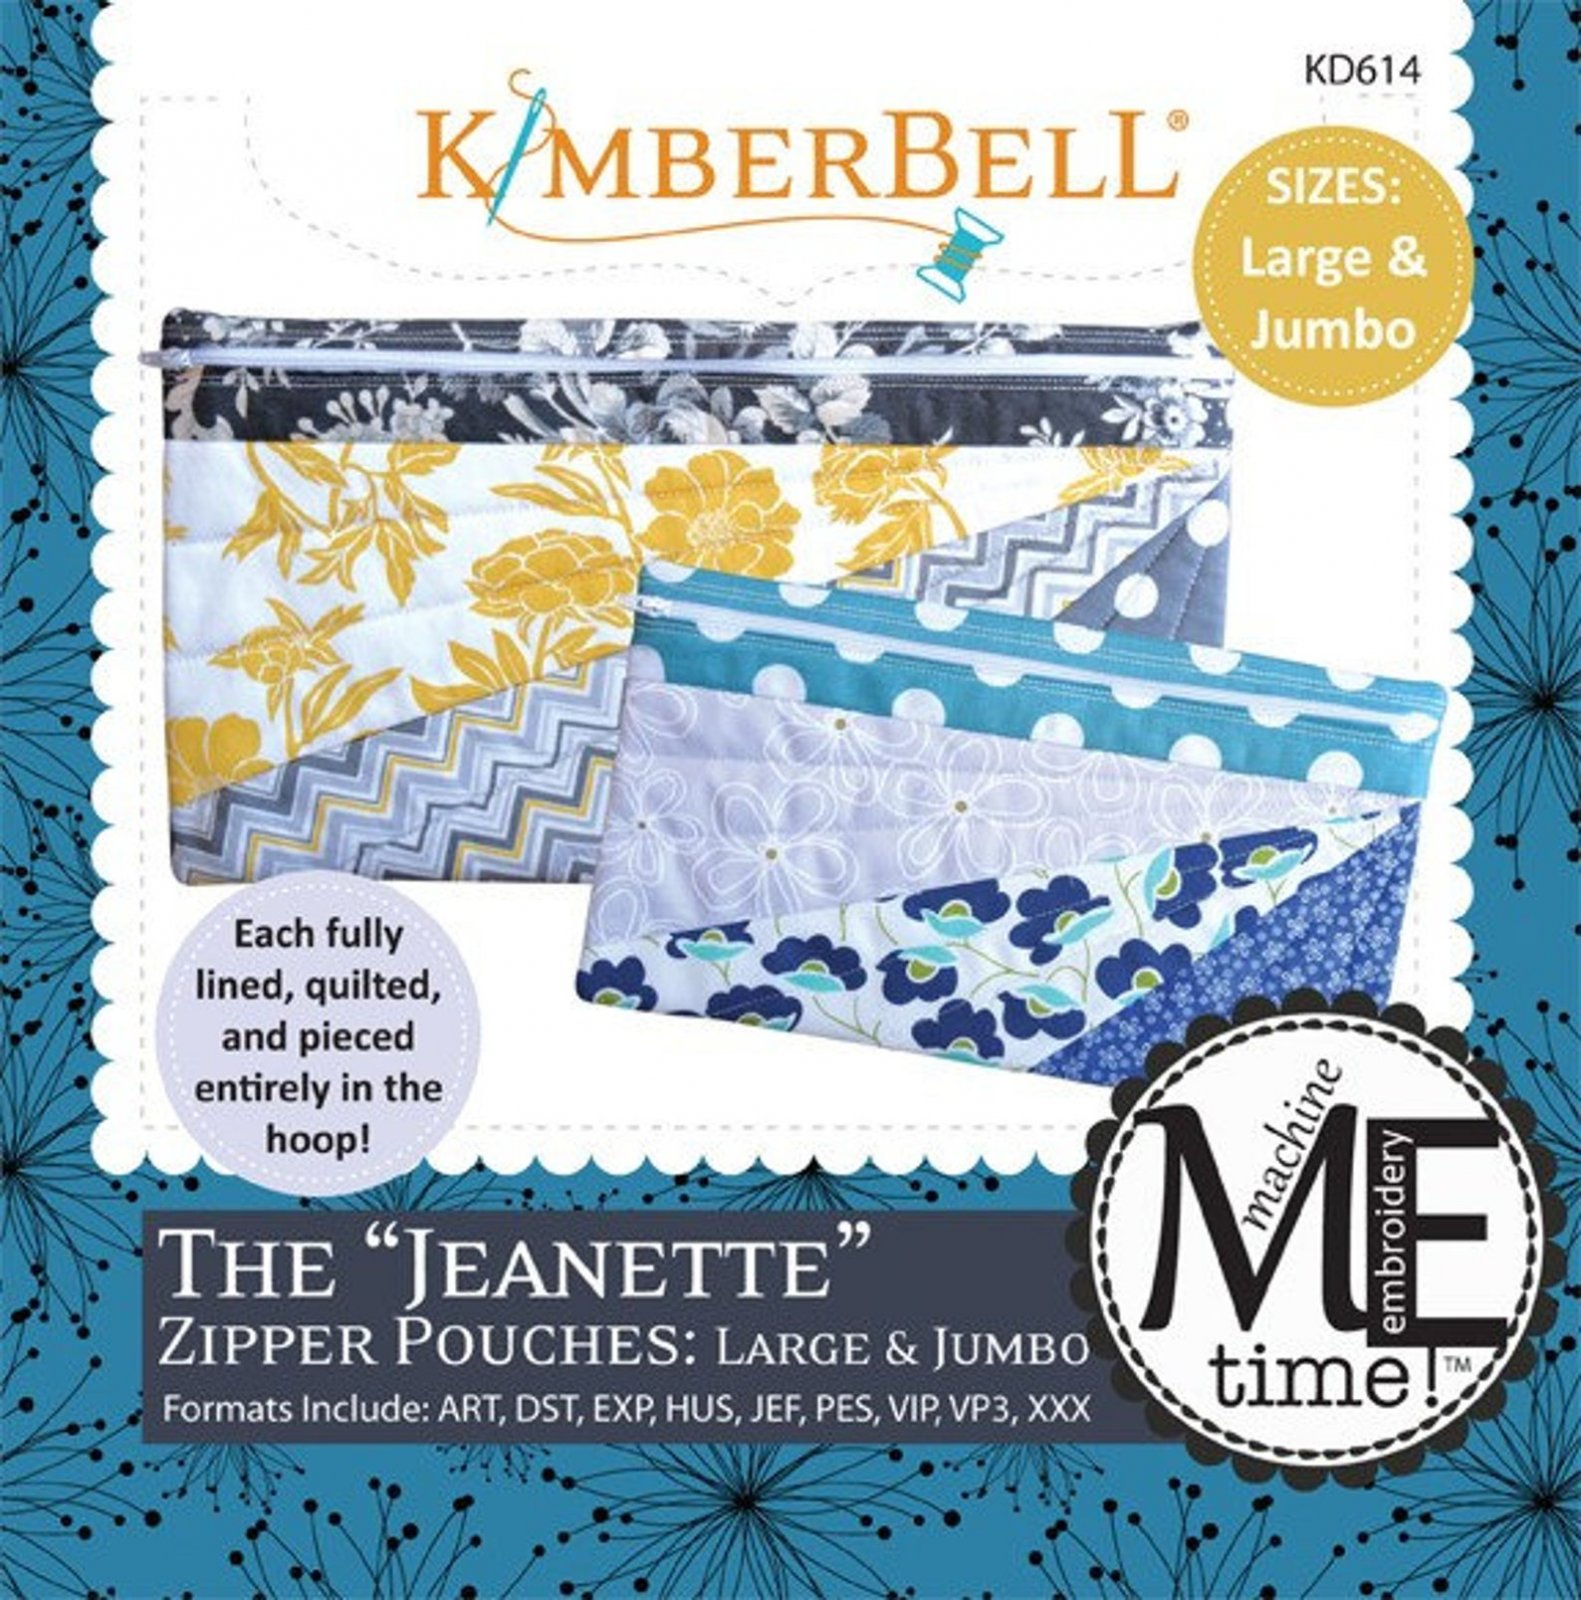 Kimberbell The Jeanette Zipper Pouches Large & Jumbo